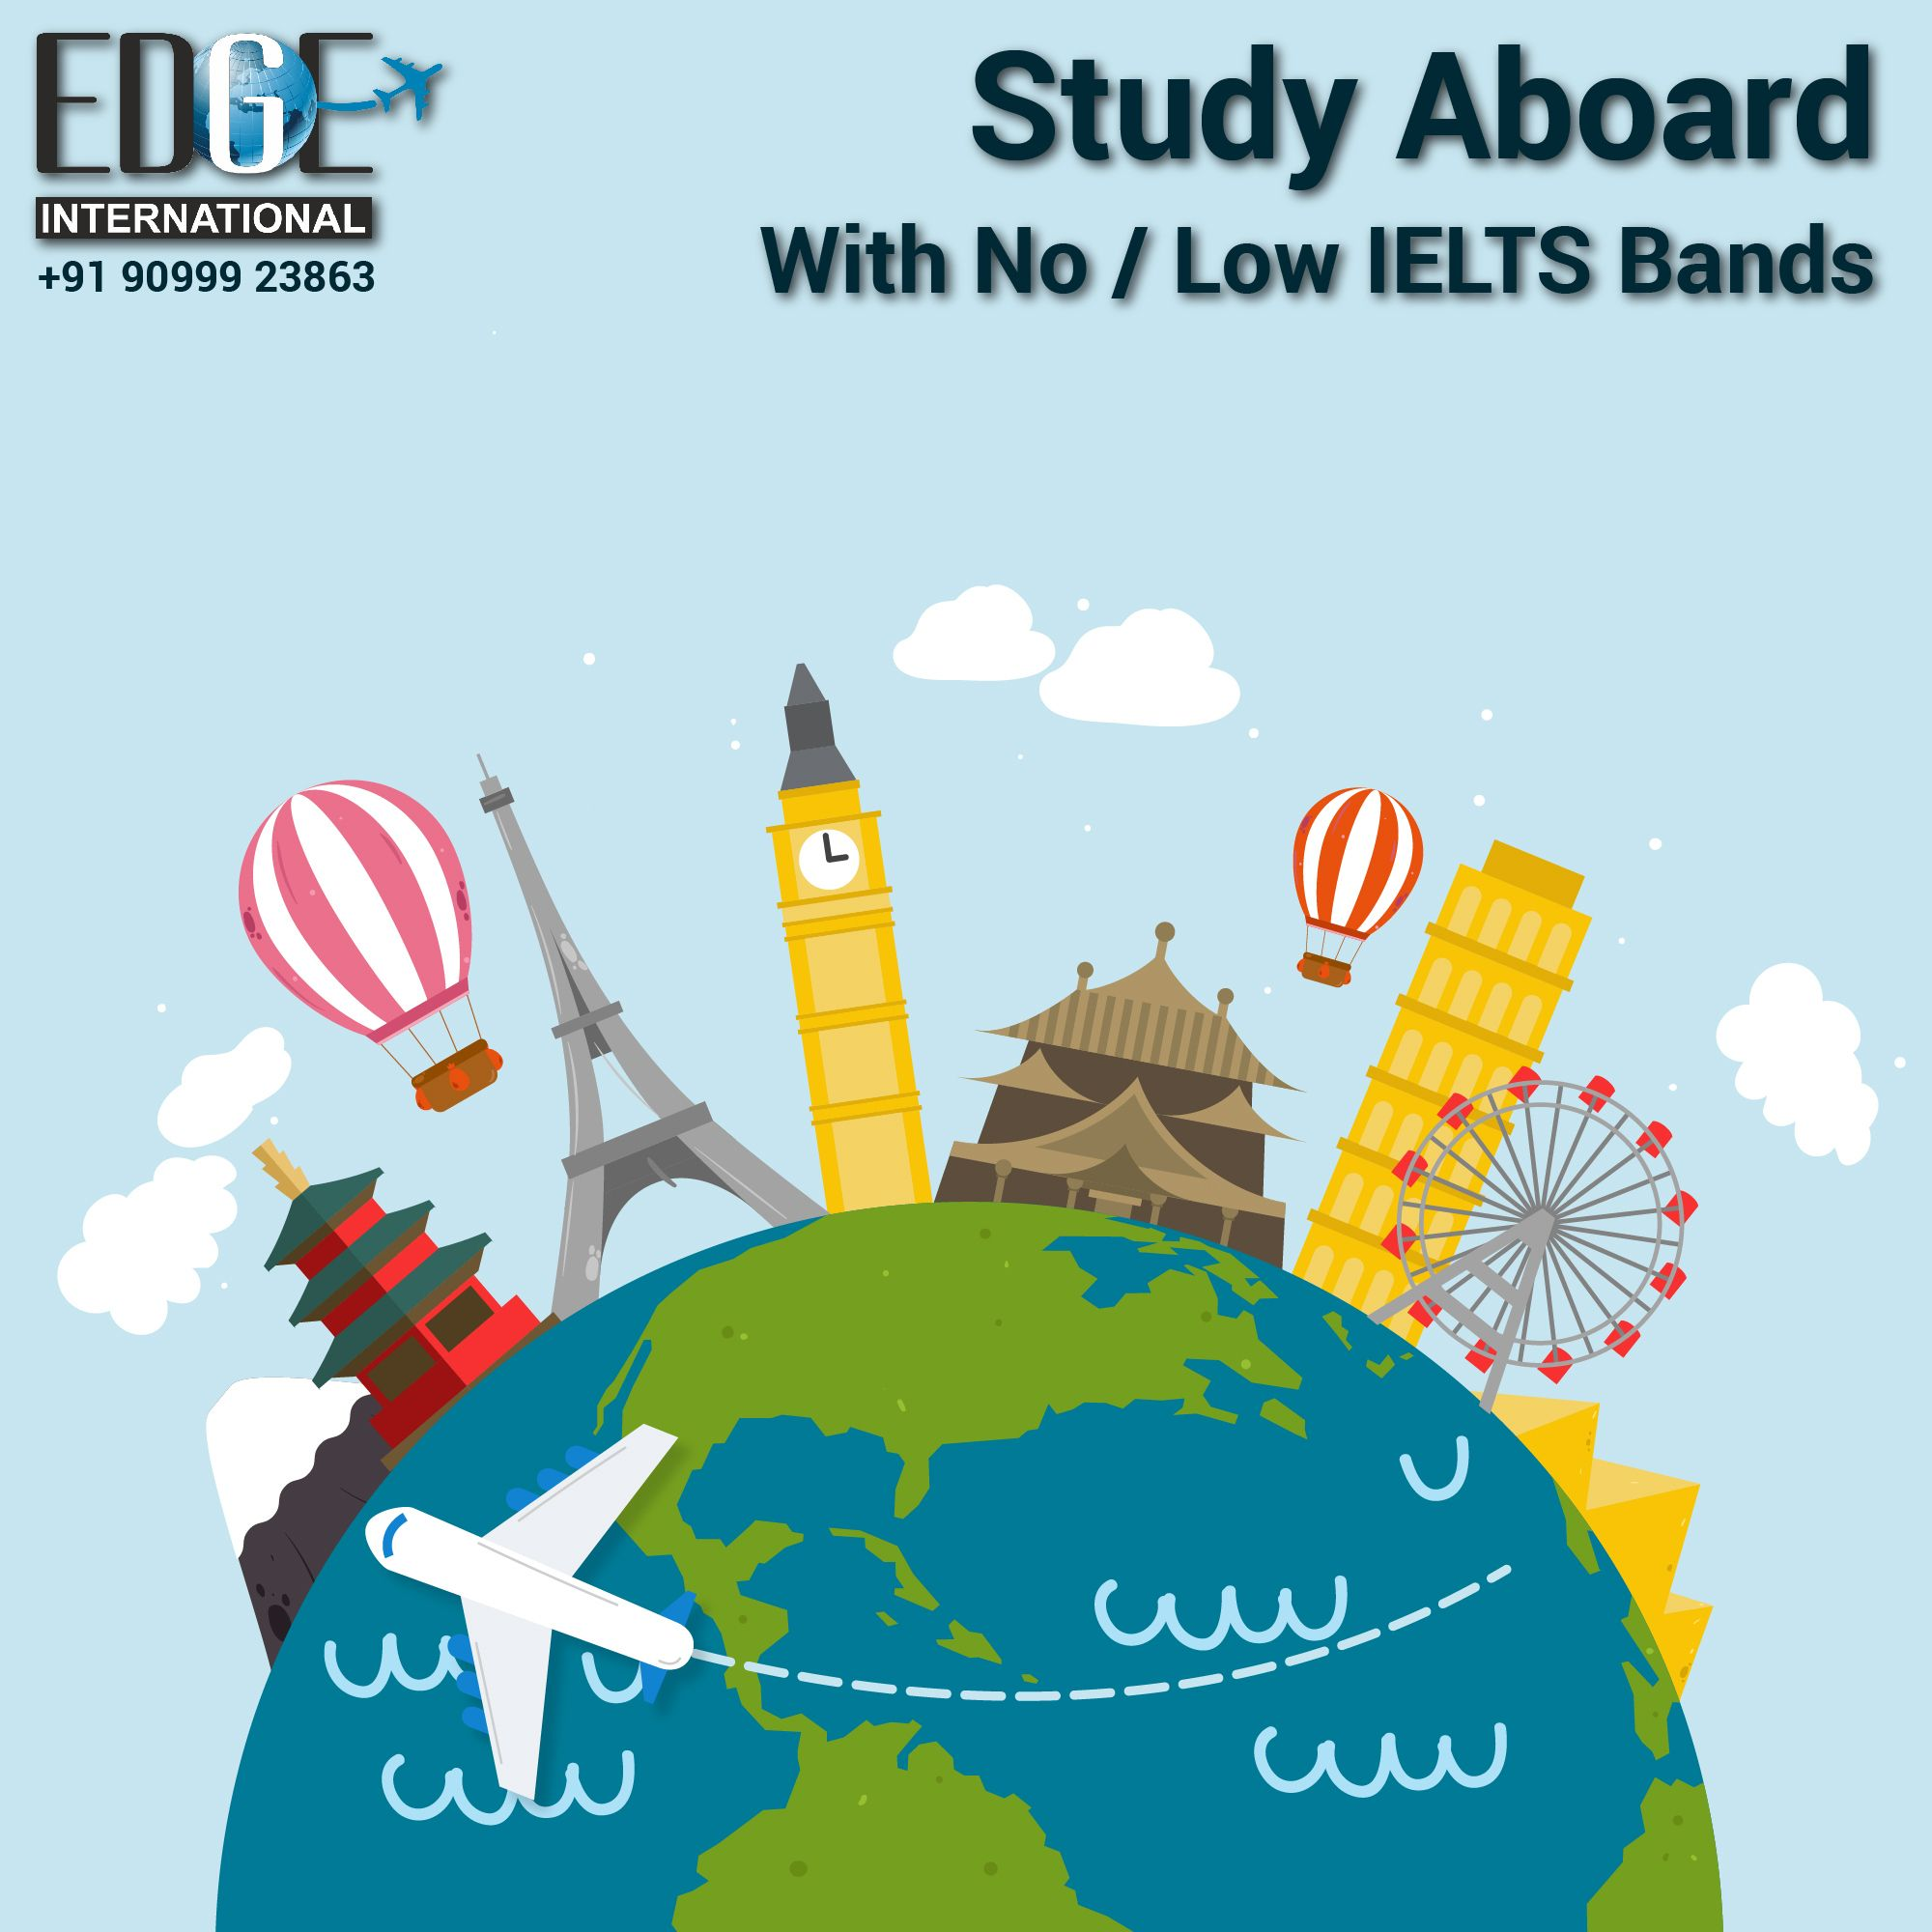 Study Abroad with No/ Low IELTS Bands. To know more call